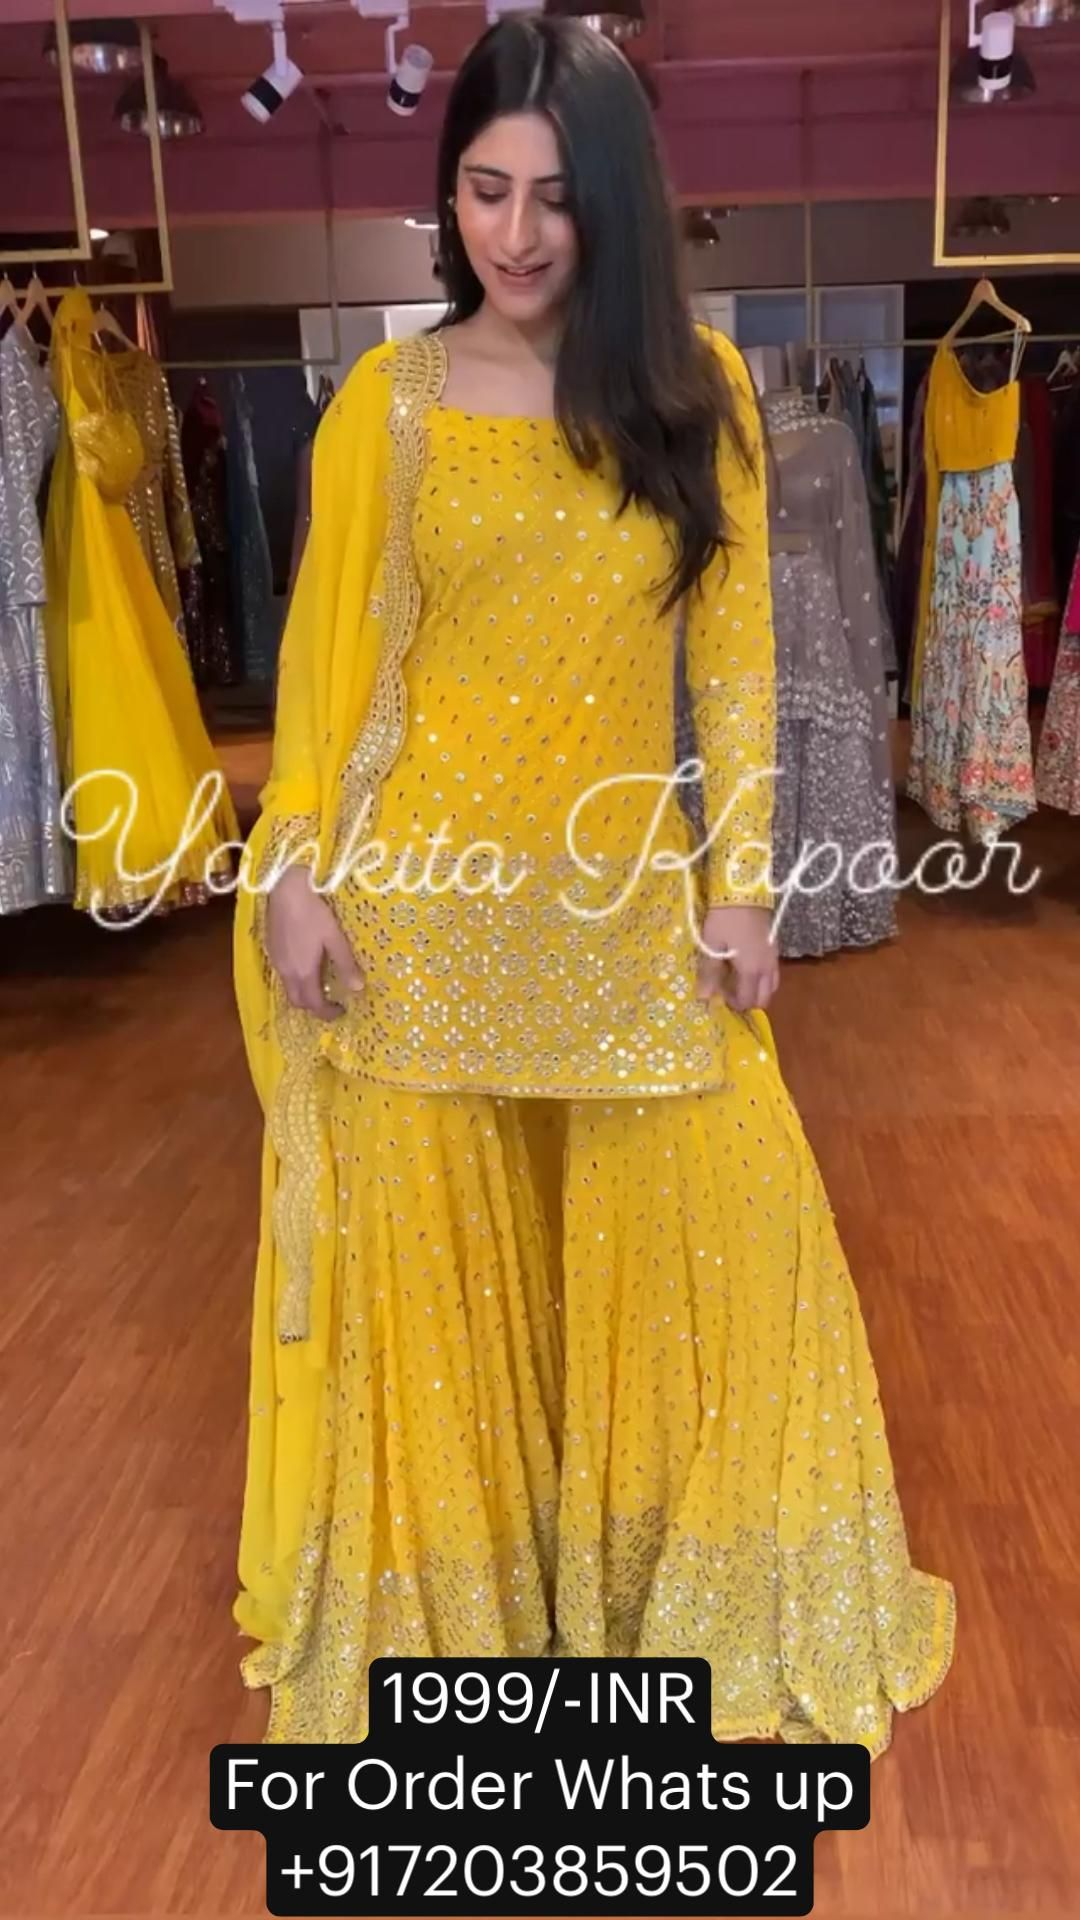 1999/-INR For Order Whats up  +917203859502